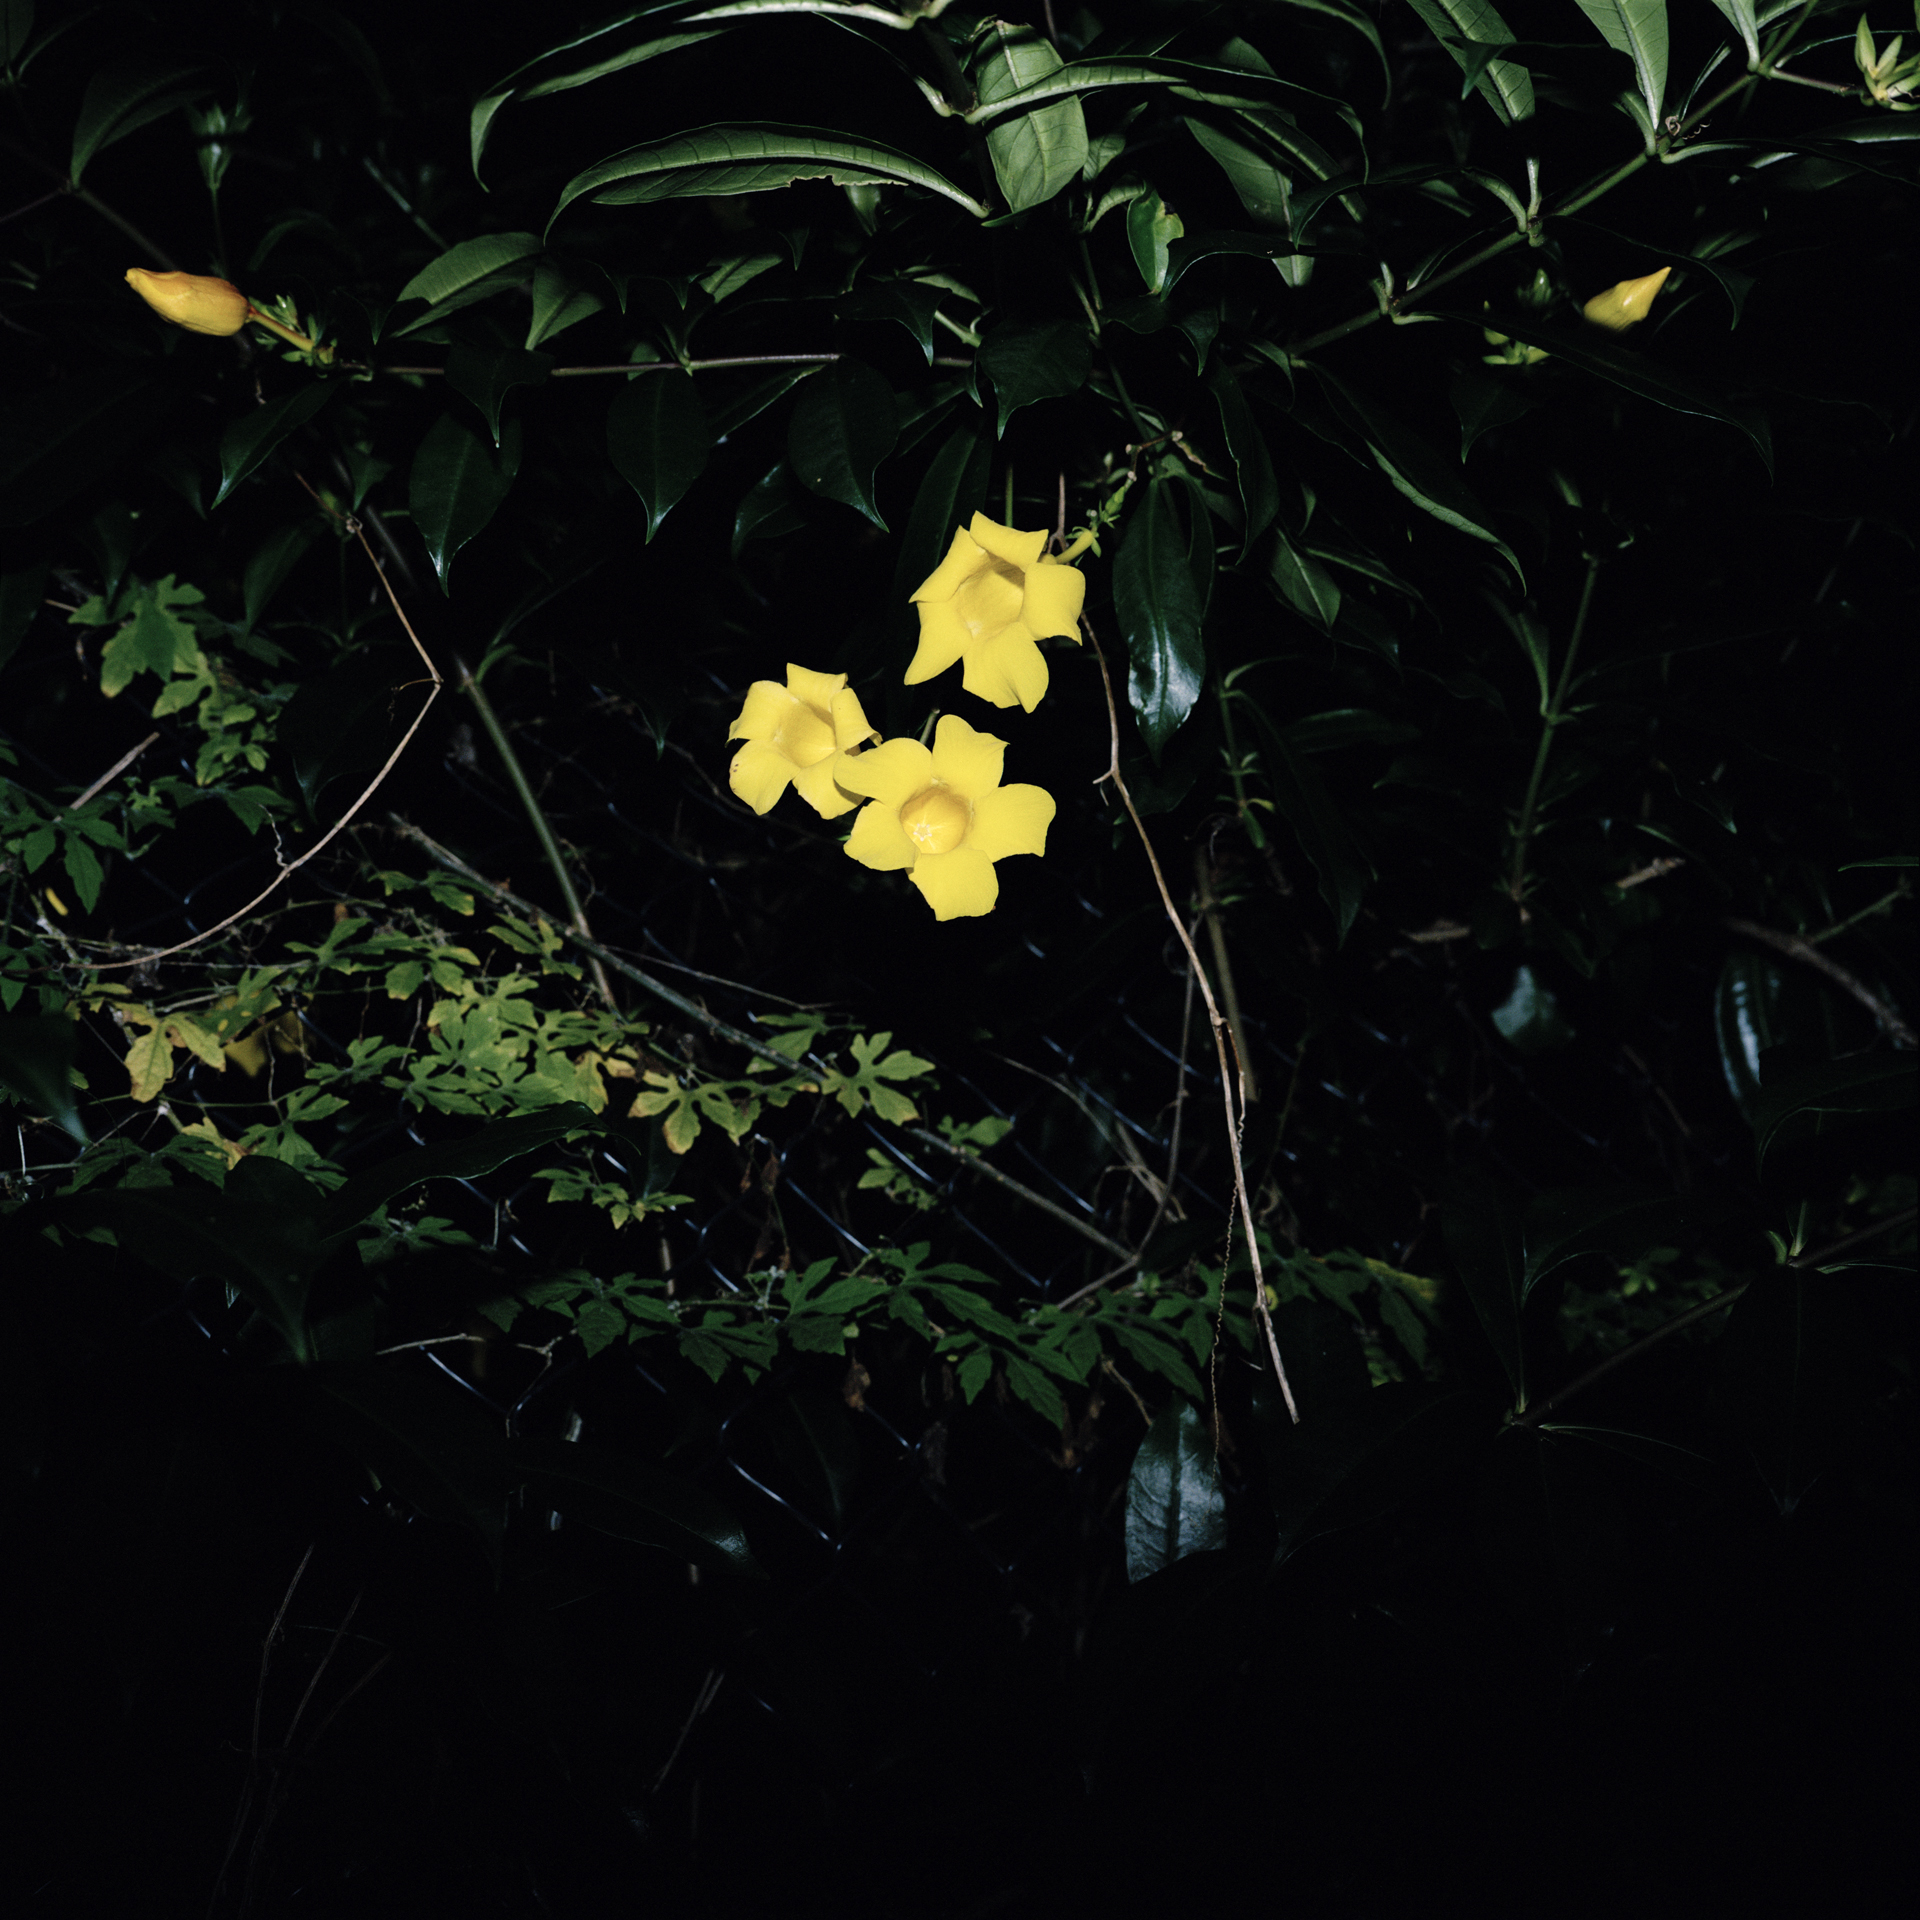 Night Flower 087